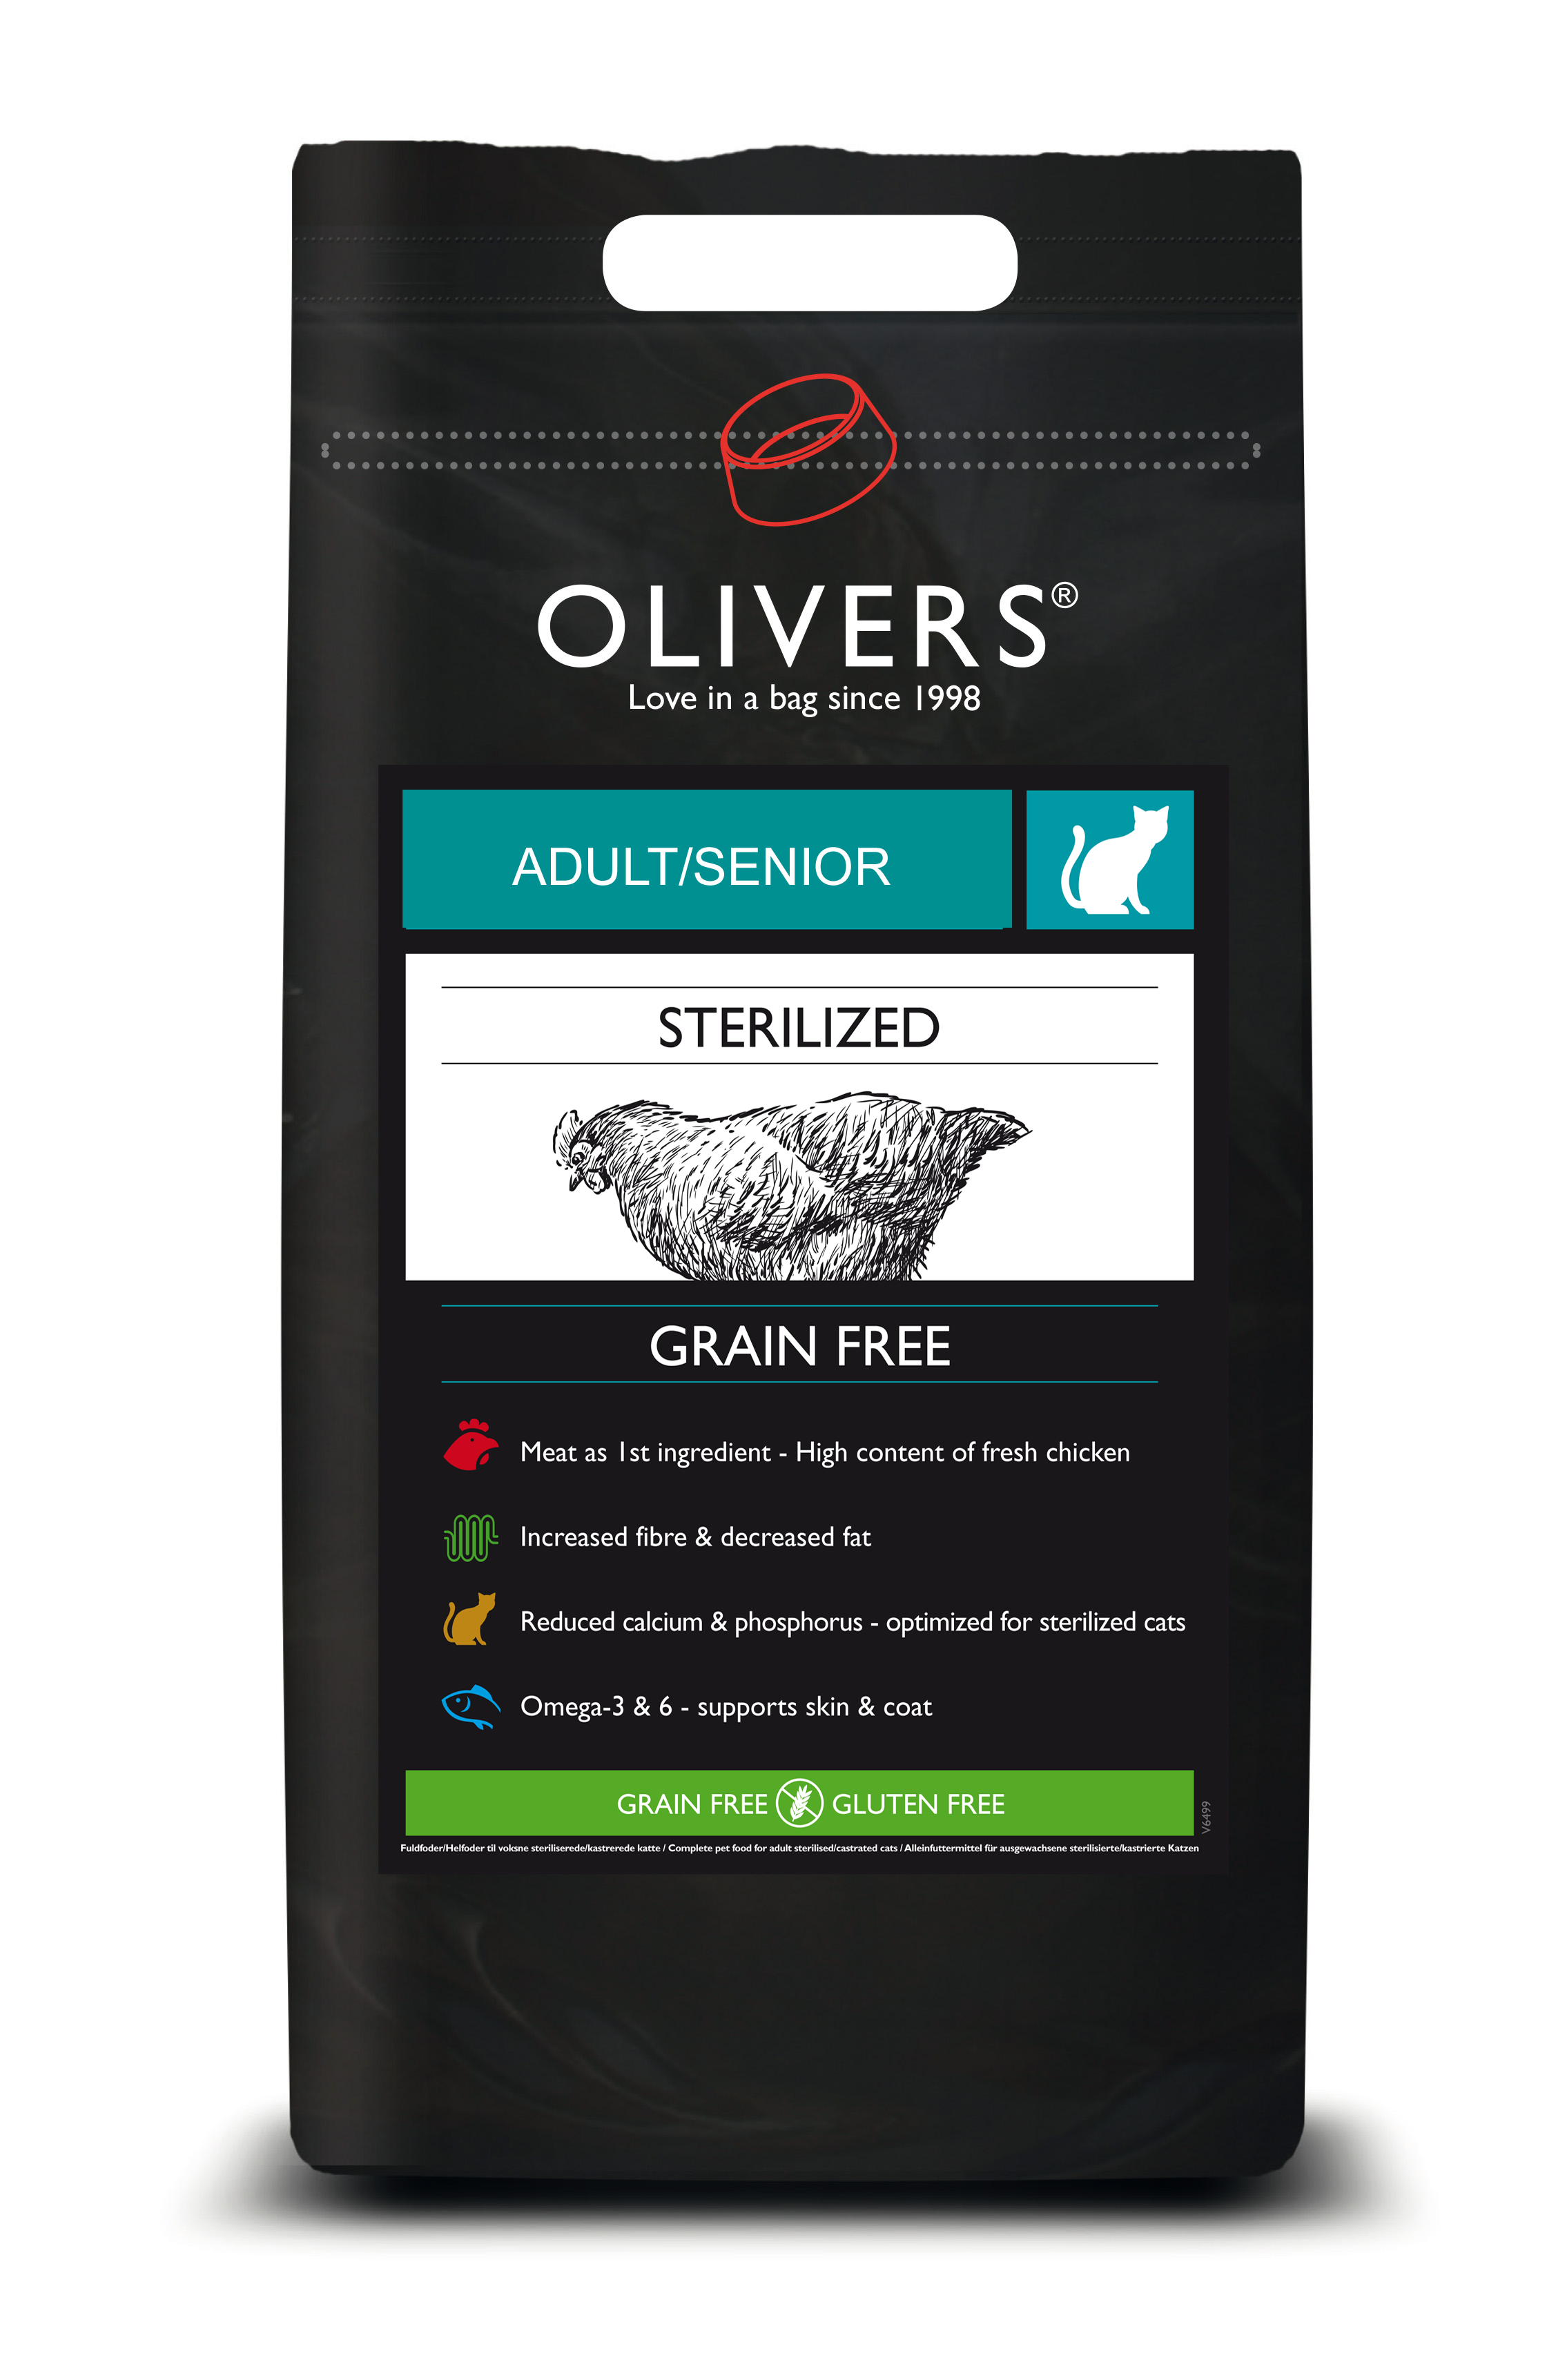 OLIVERS Chicken GrainFree Sterilized Adult Senior Cat